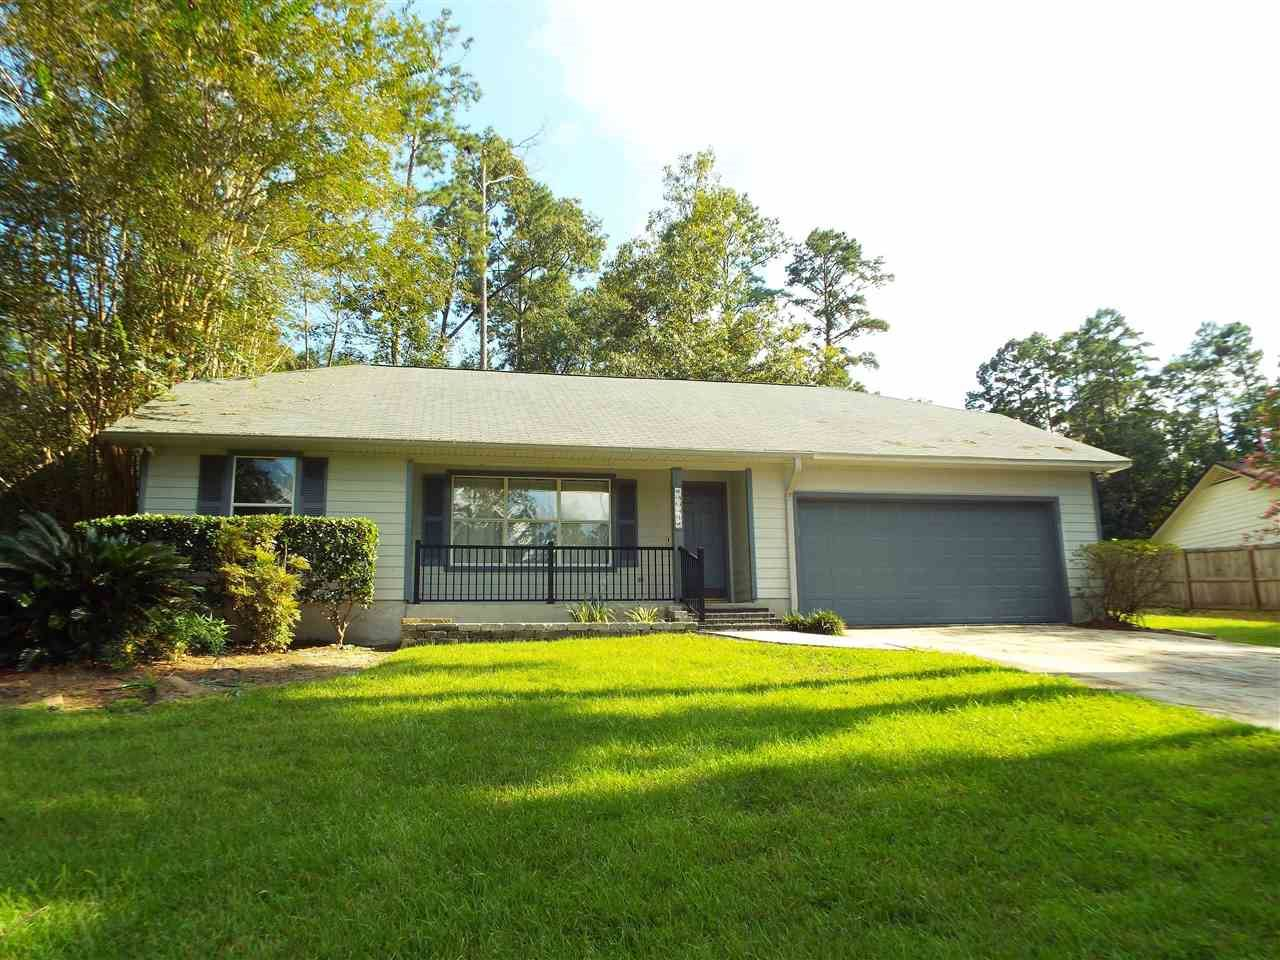 8341 Chickasaw Trail, Tallahassee, FL 32312 - MLS#: 323370